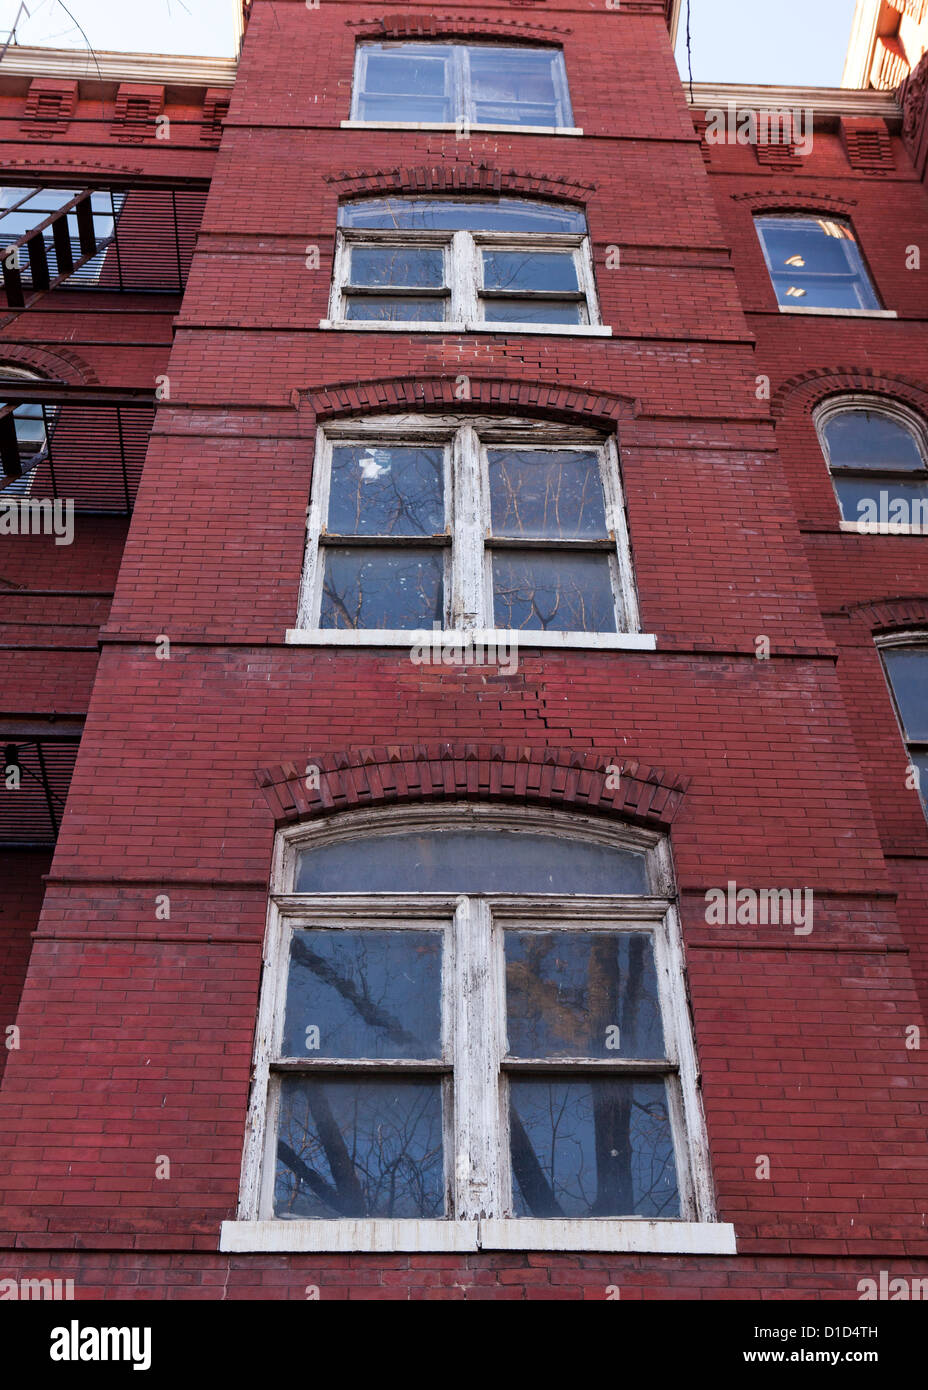 Old wood frame windows - Stock Image